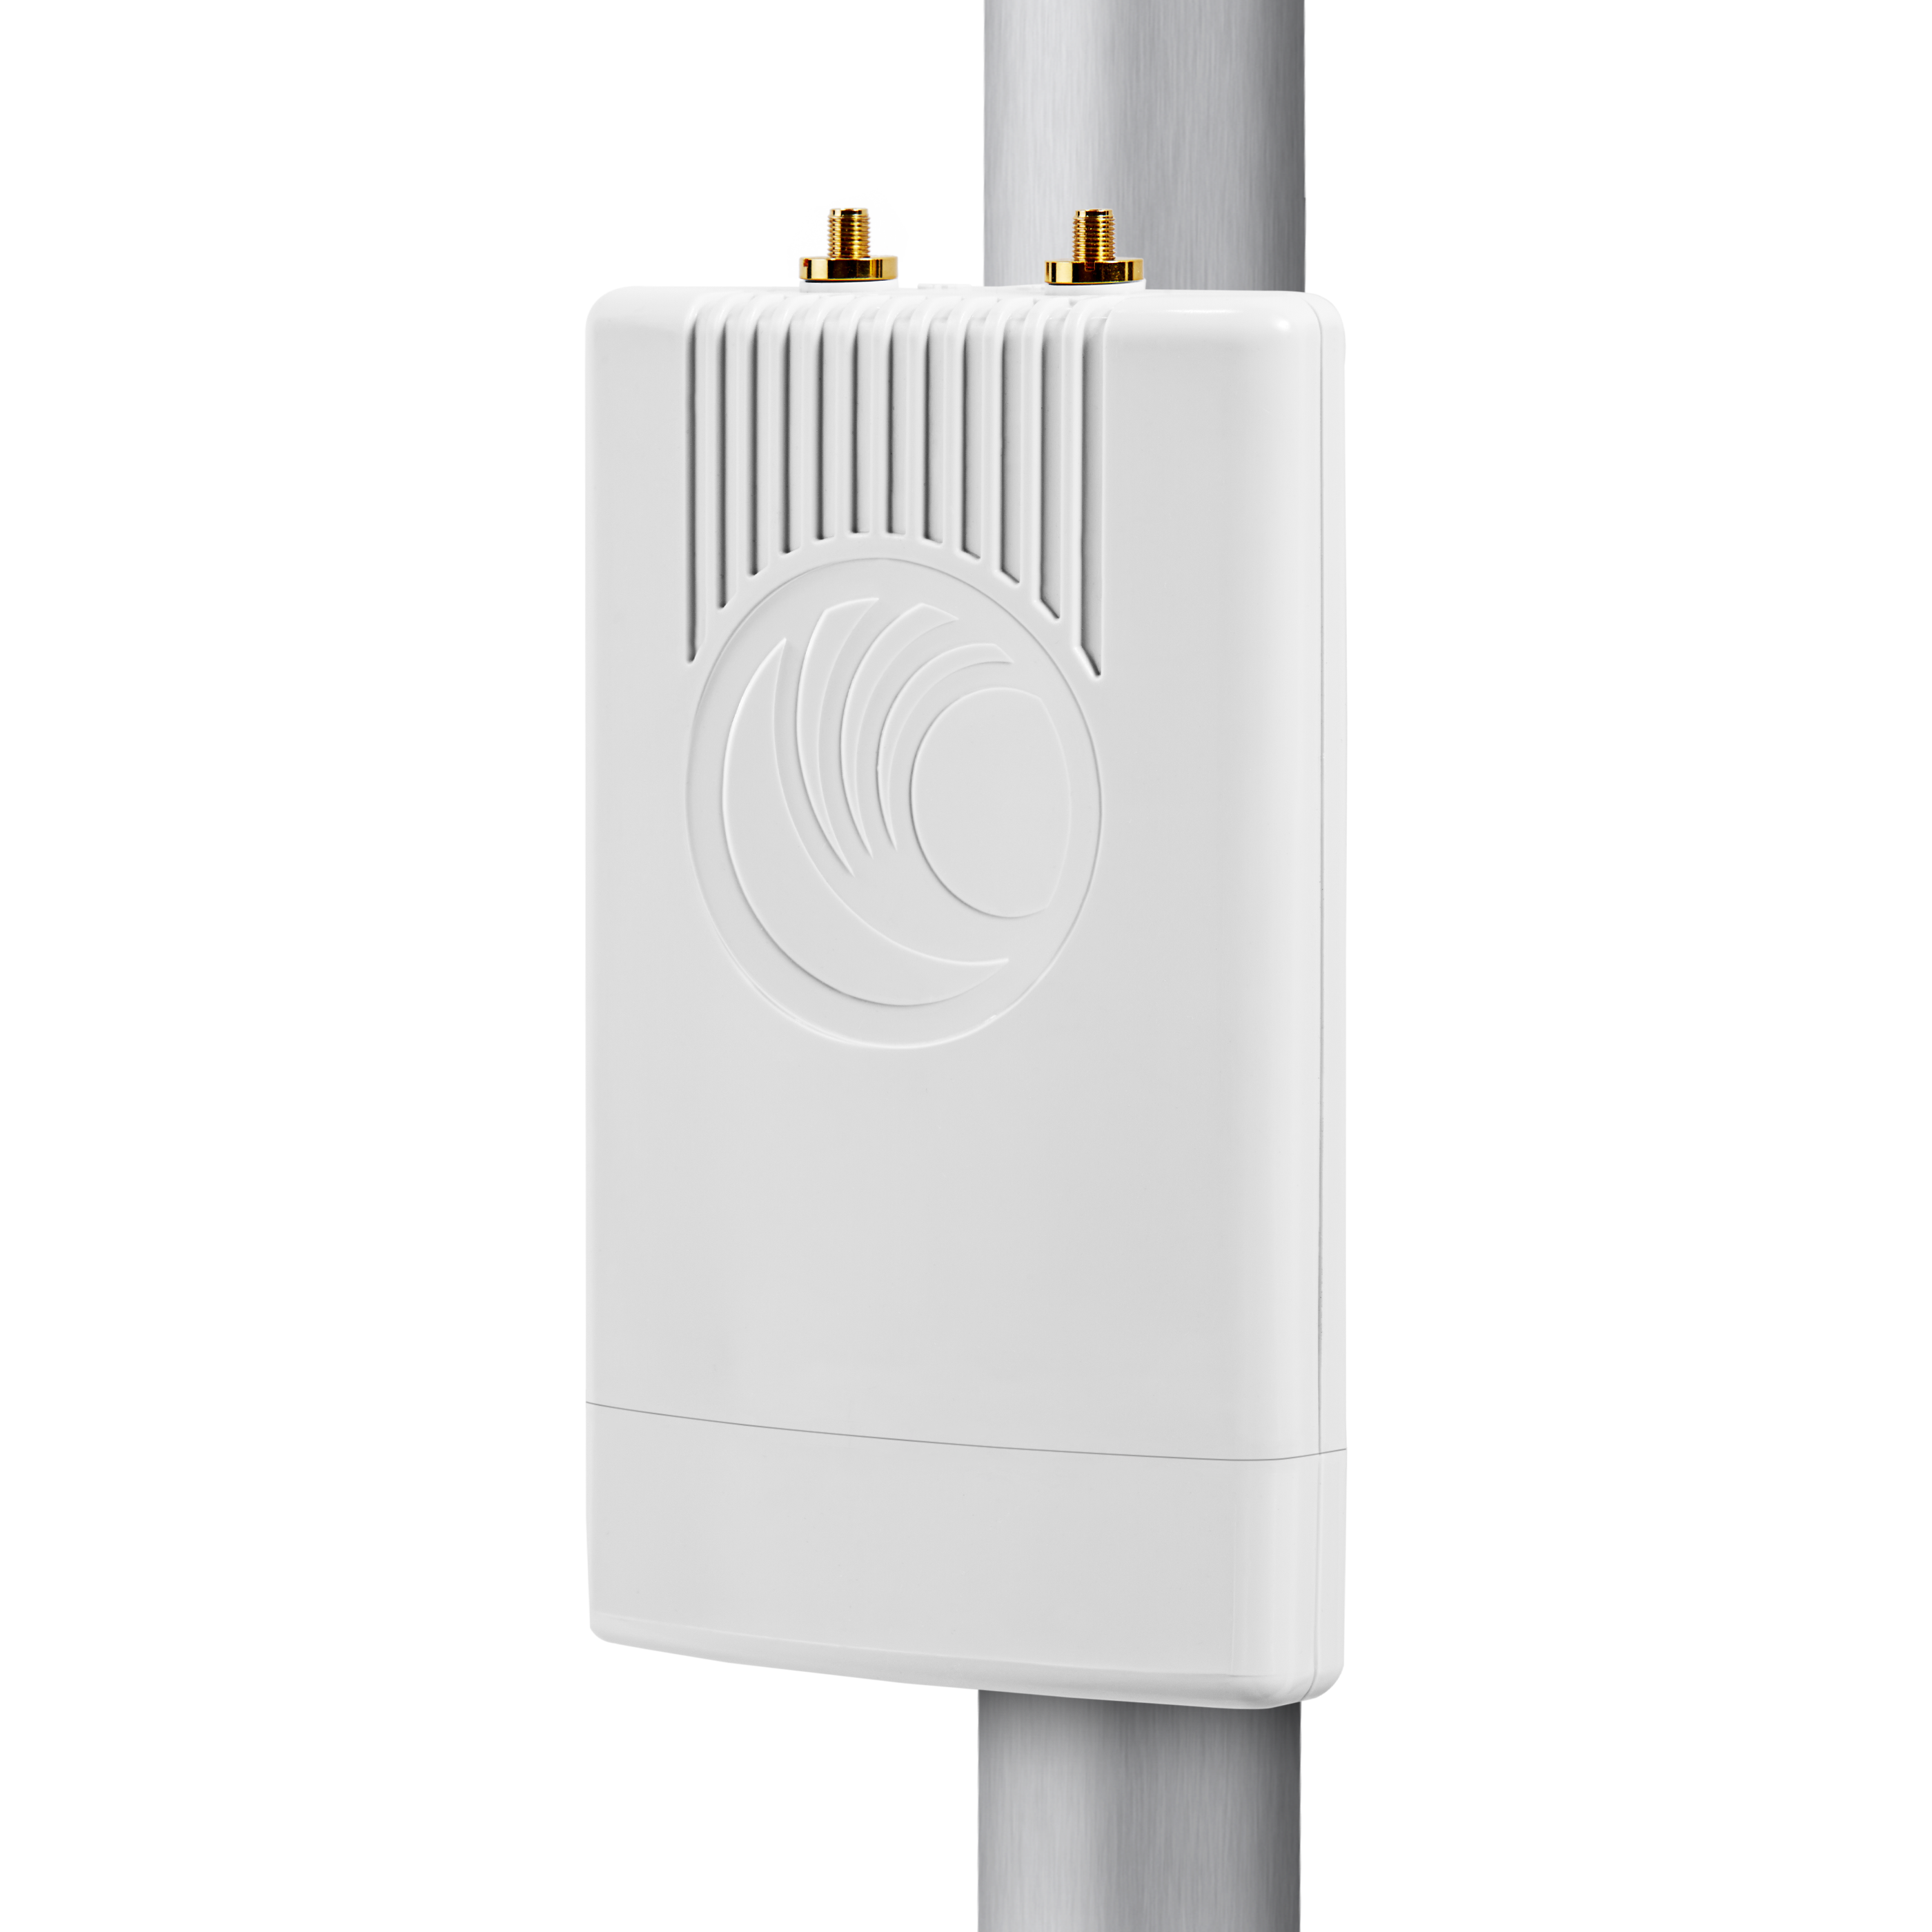 C050900A033A Cambium ePMP 2000: 5 GHz AP with Intelligent Filtering and Sync EU